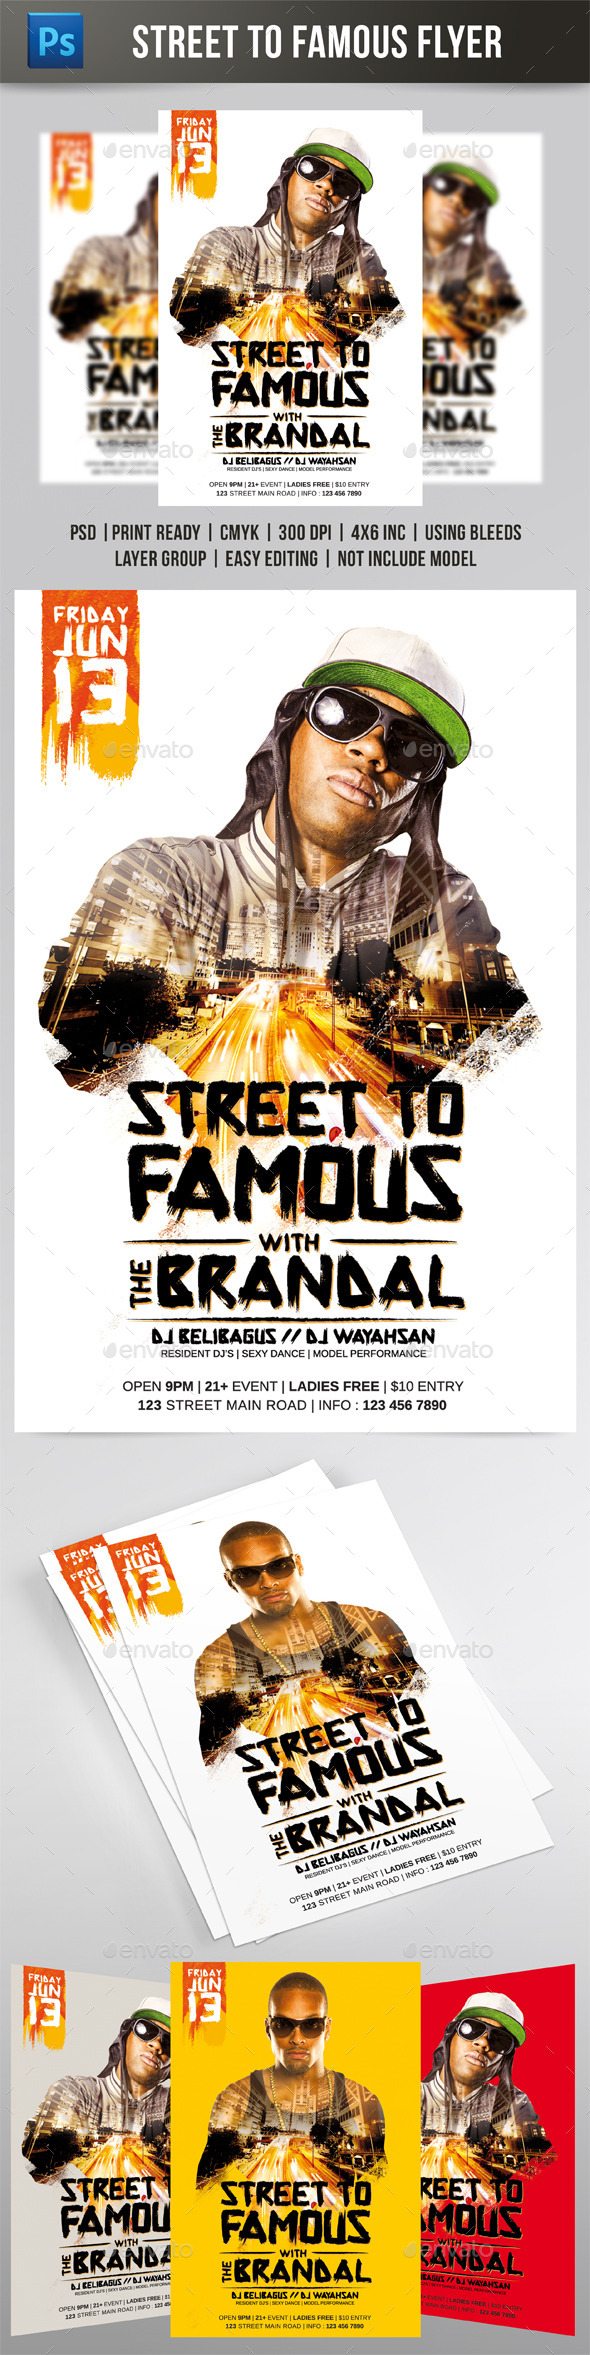 Street to Famous Flyer - Events Flyers